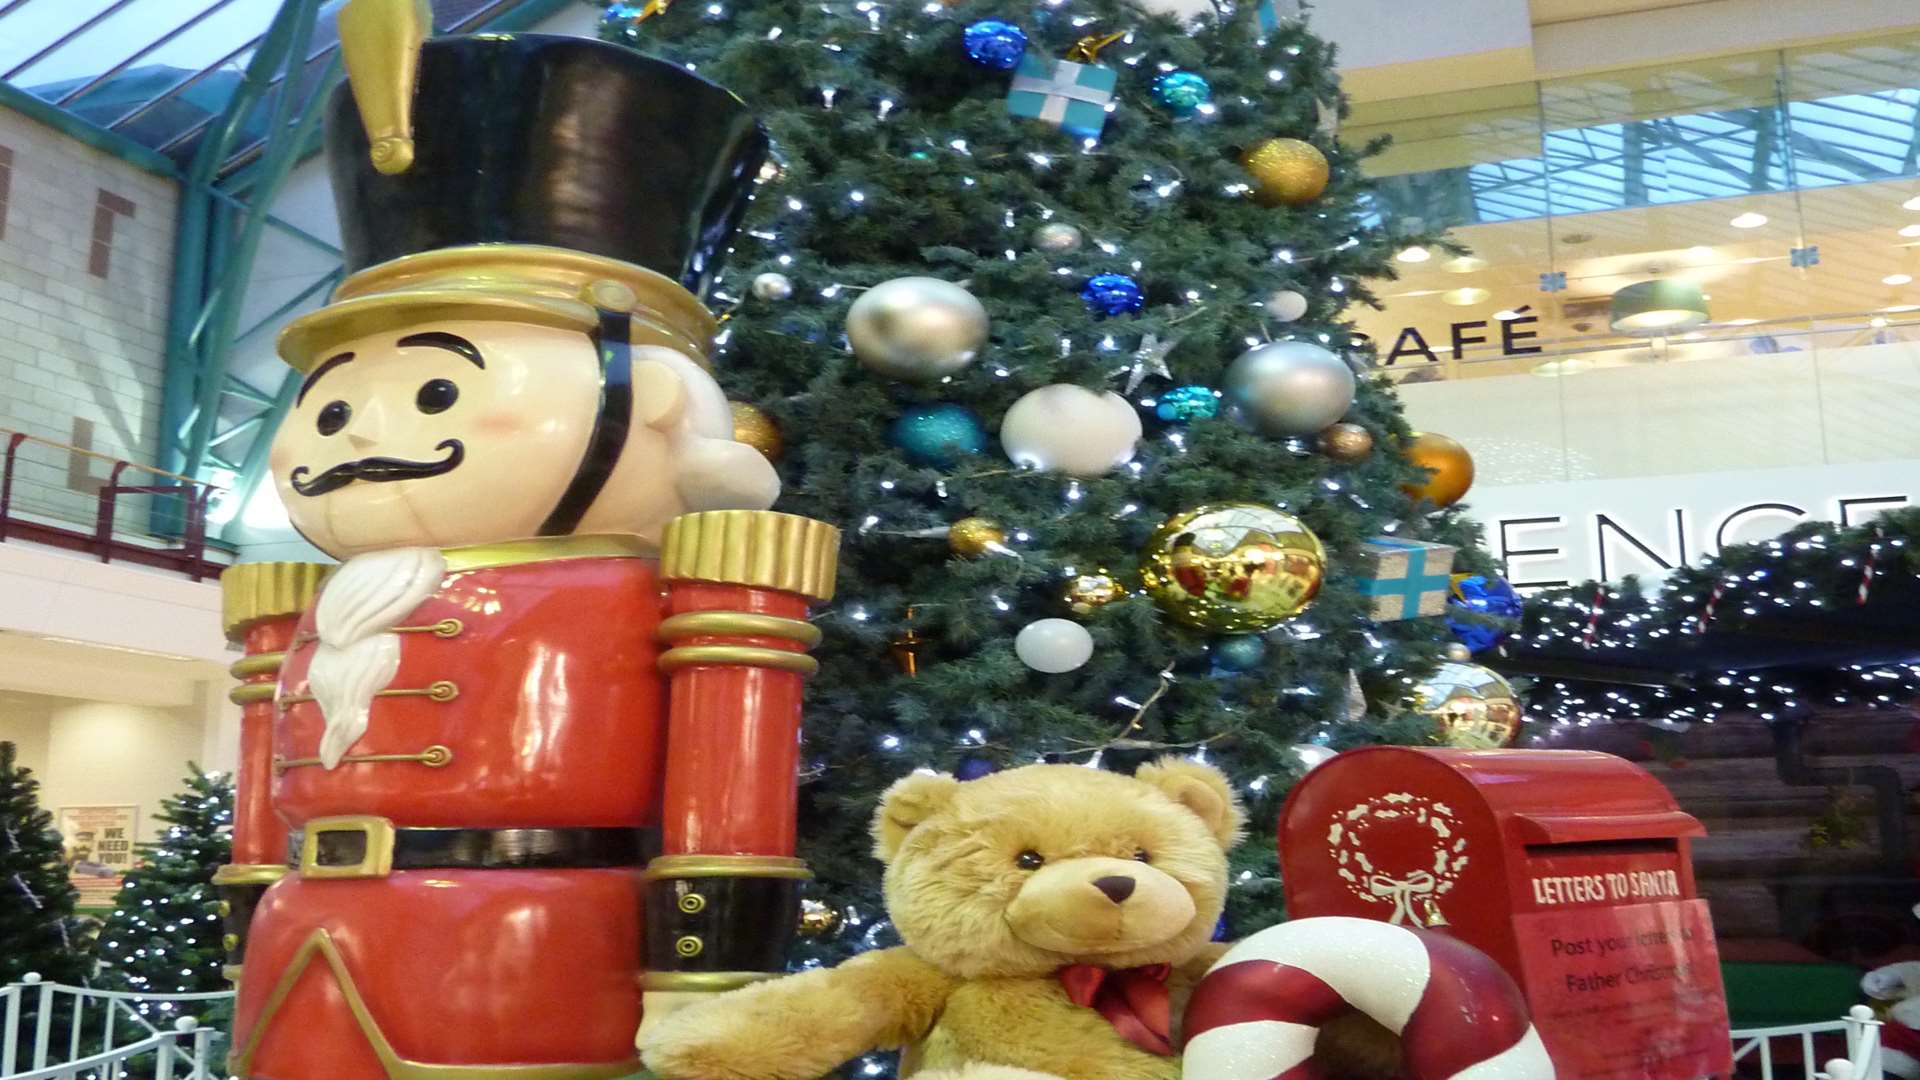 Christmas at Hempstead Valley shopping centre